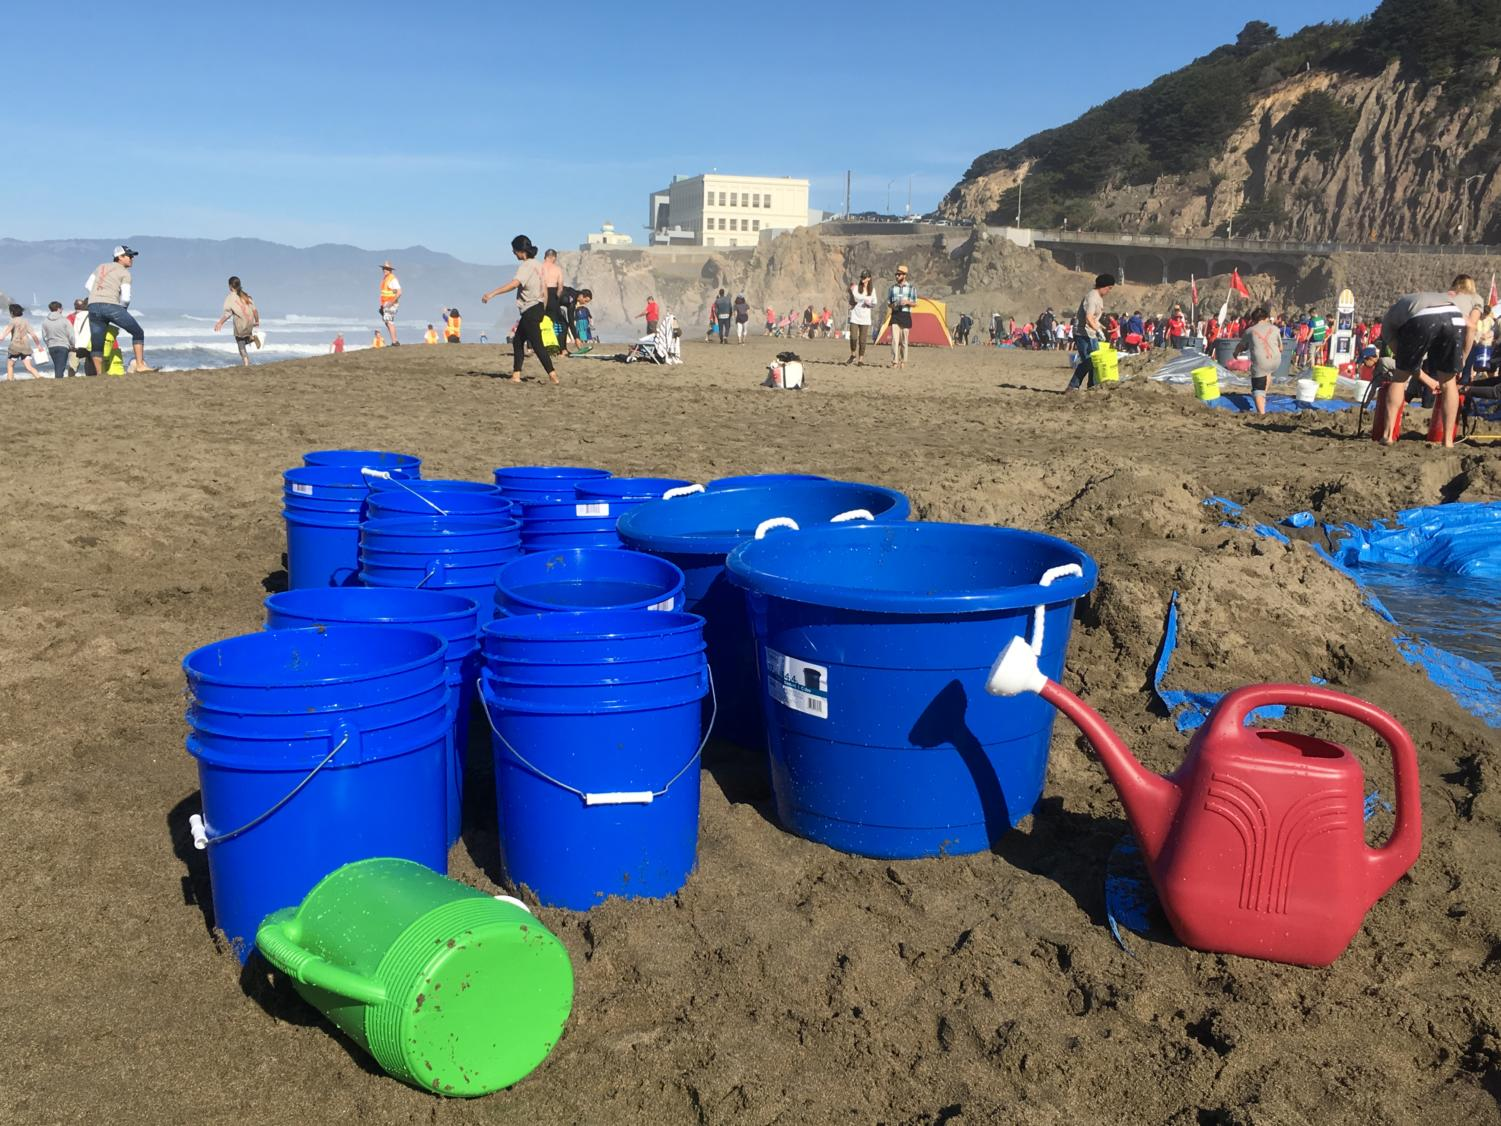 Volunteers+fill+buckets+with+water+for+the+teams+to+use.